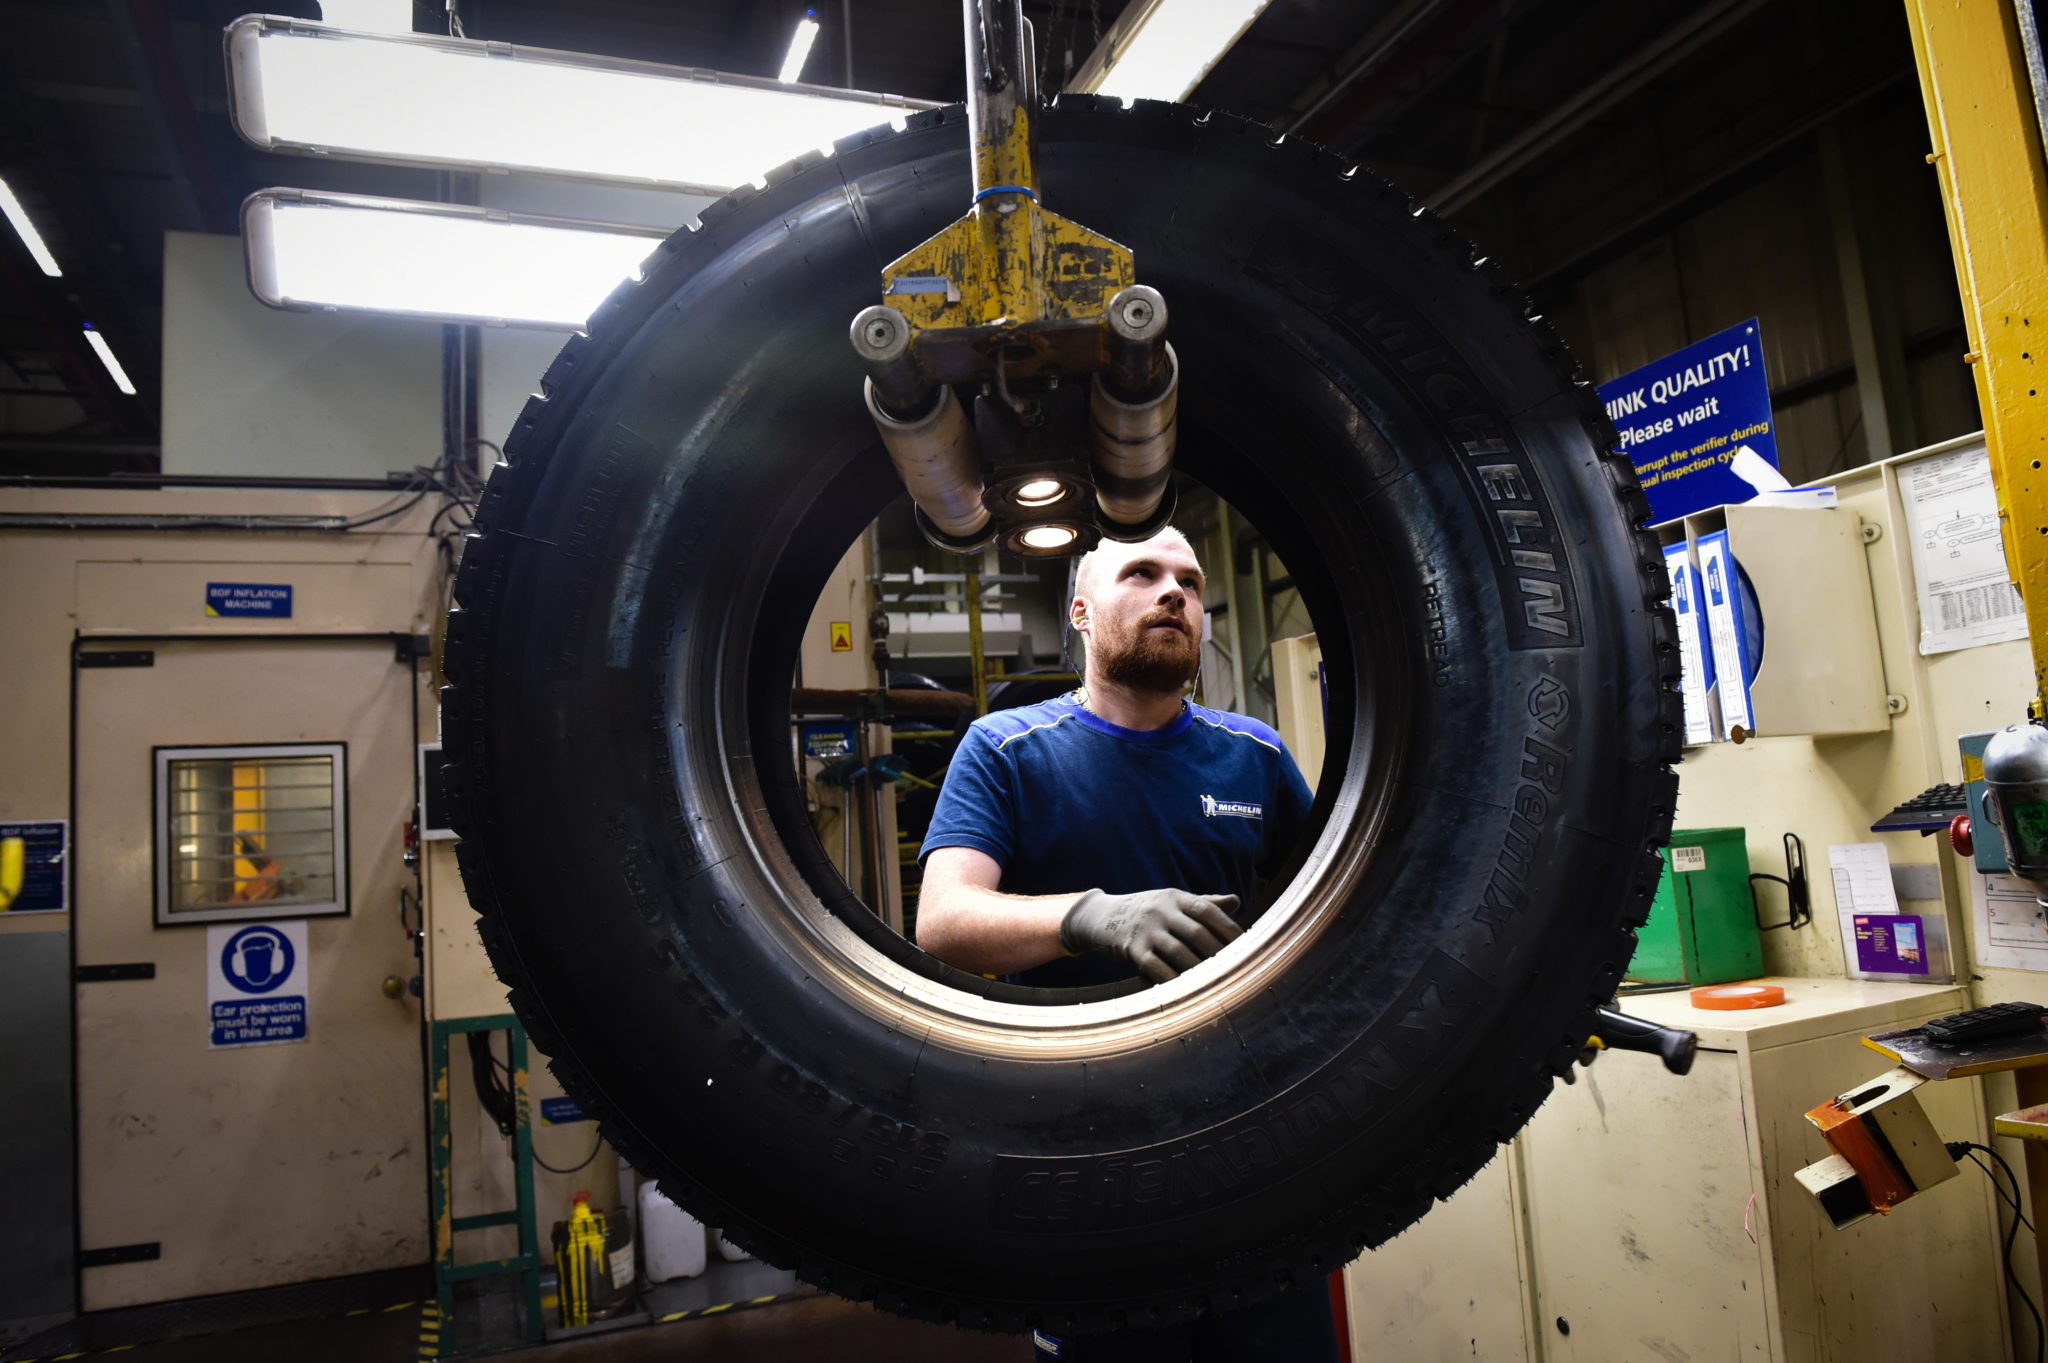 Michelin Stoke production at normal level with 'steady market growth'